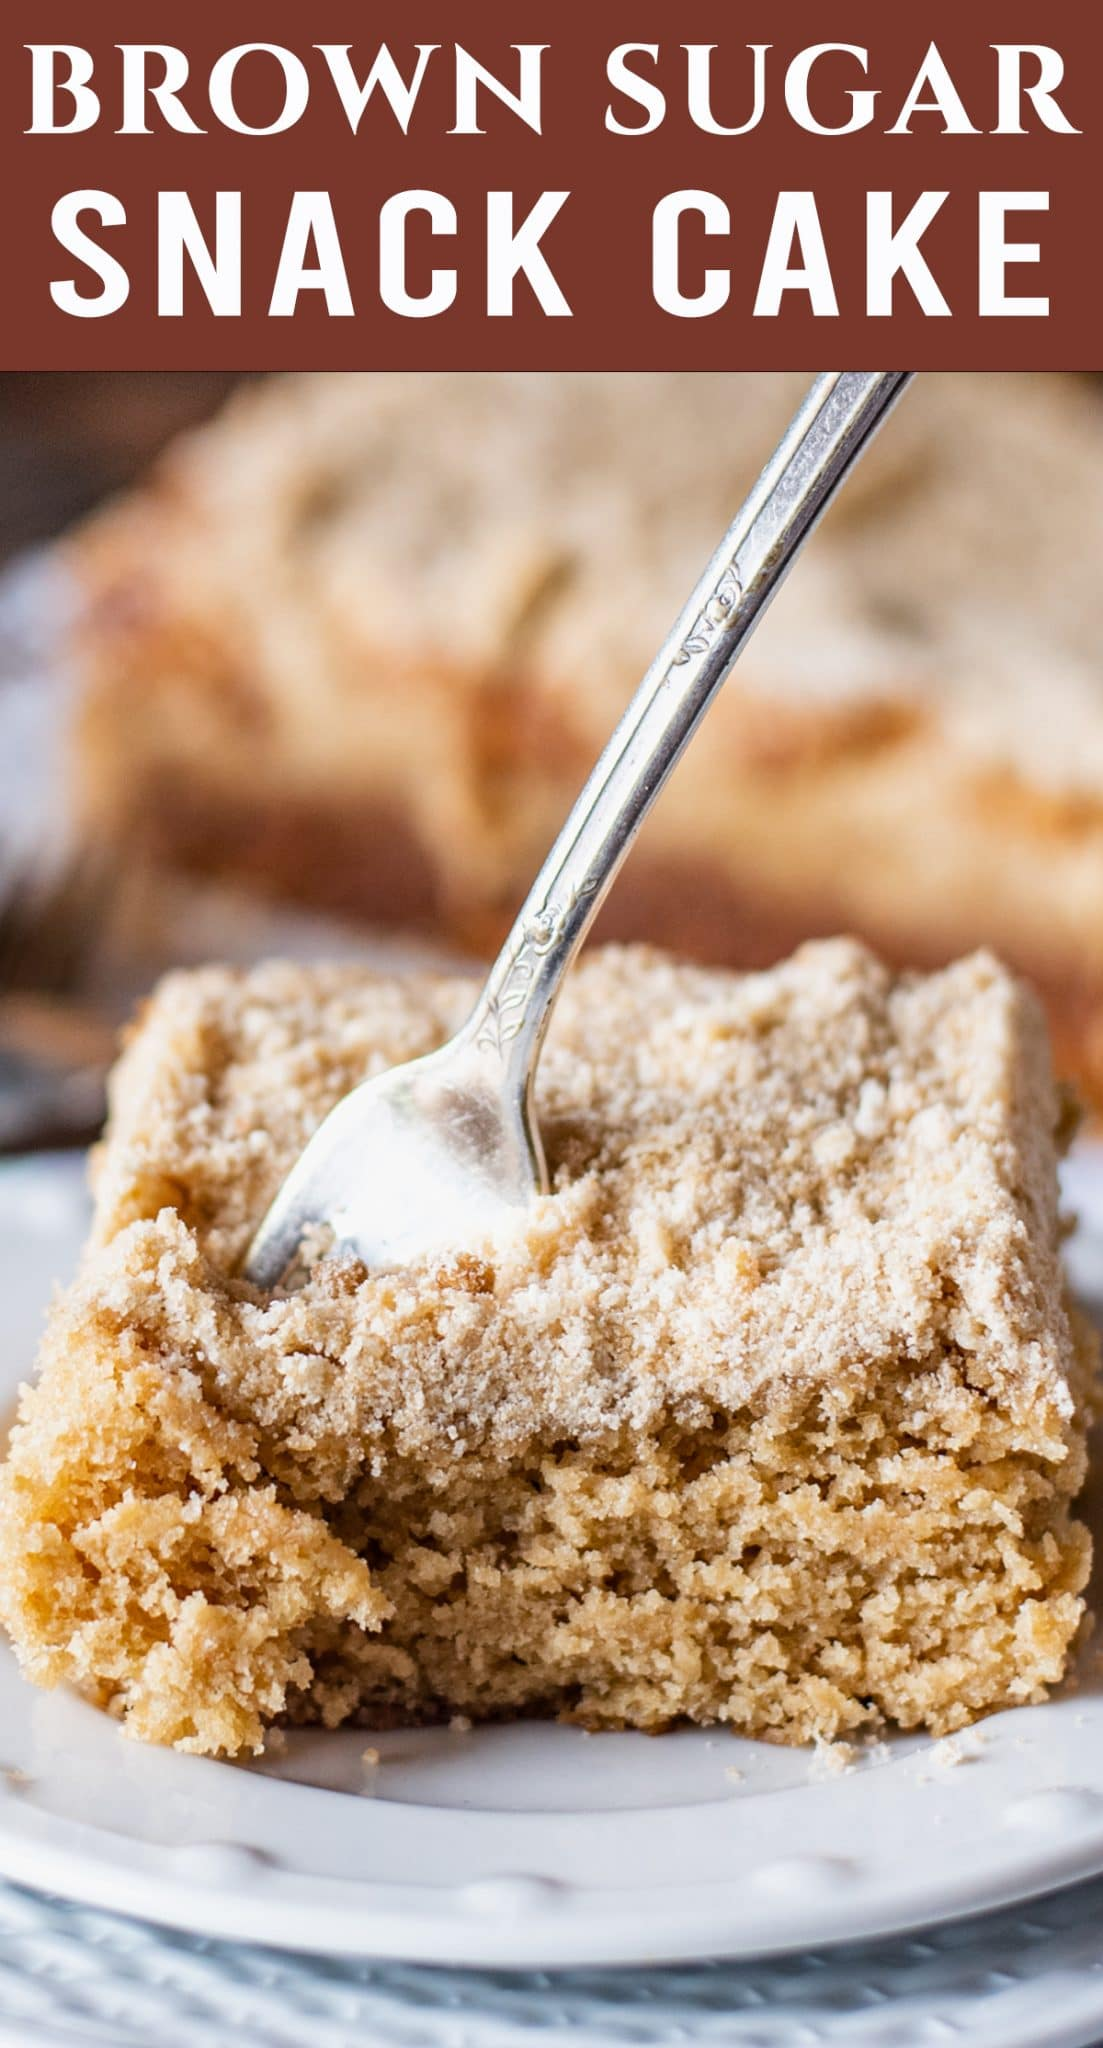 Only 6 ingredients in this easy Brown Sugar Snack Cake with tangy buttermilk flavor. Perfect as a breakfast, brunch or an afternoon snack. via @thebestcakerecipes